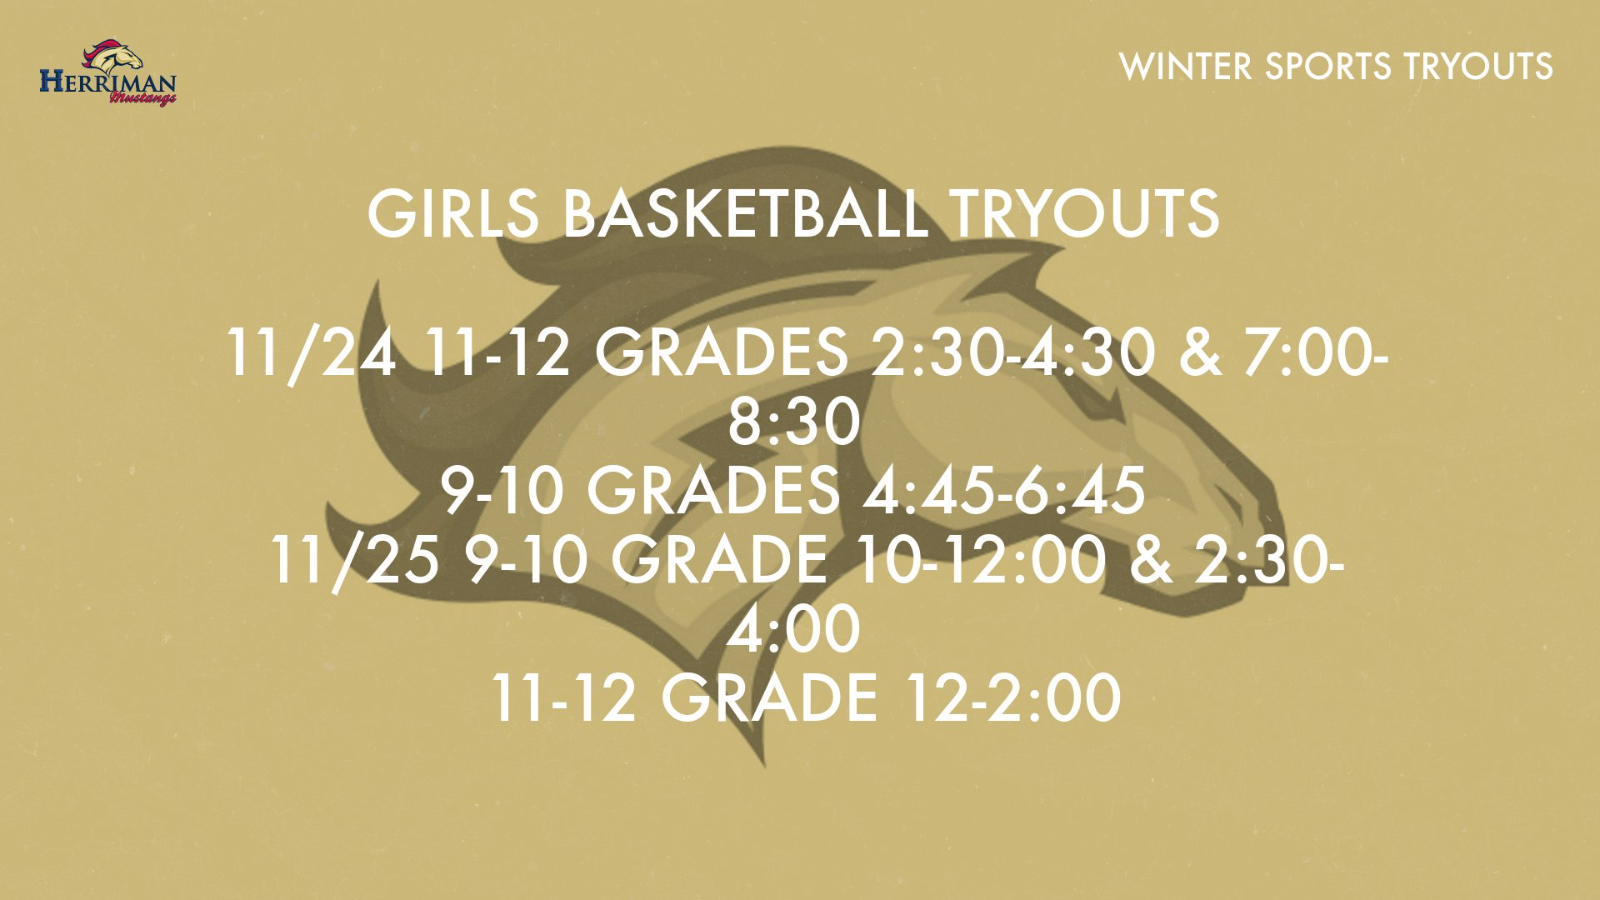 GIRLS BASKETBALL TRYOUT IN SMALL GYM STARTING 11/24